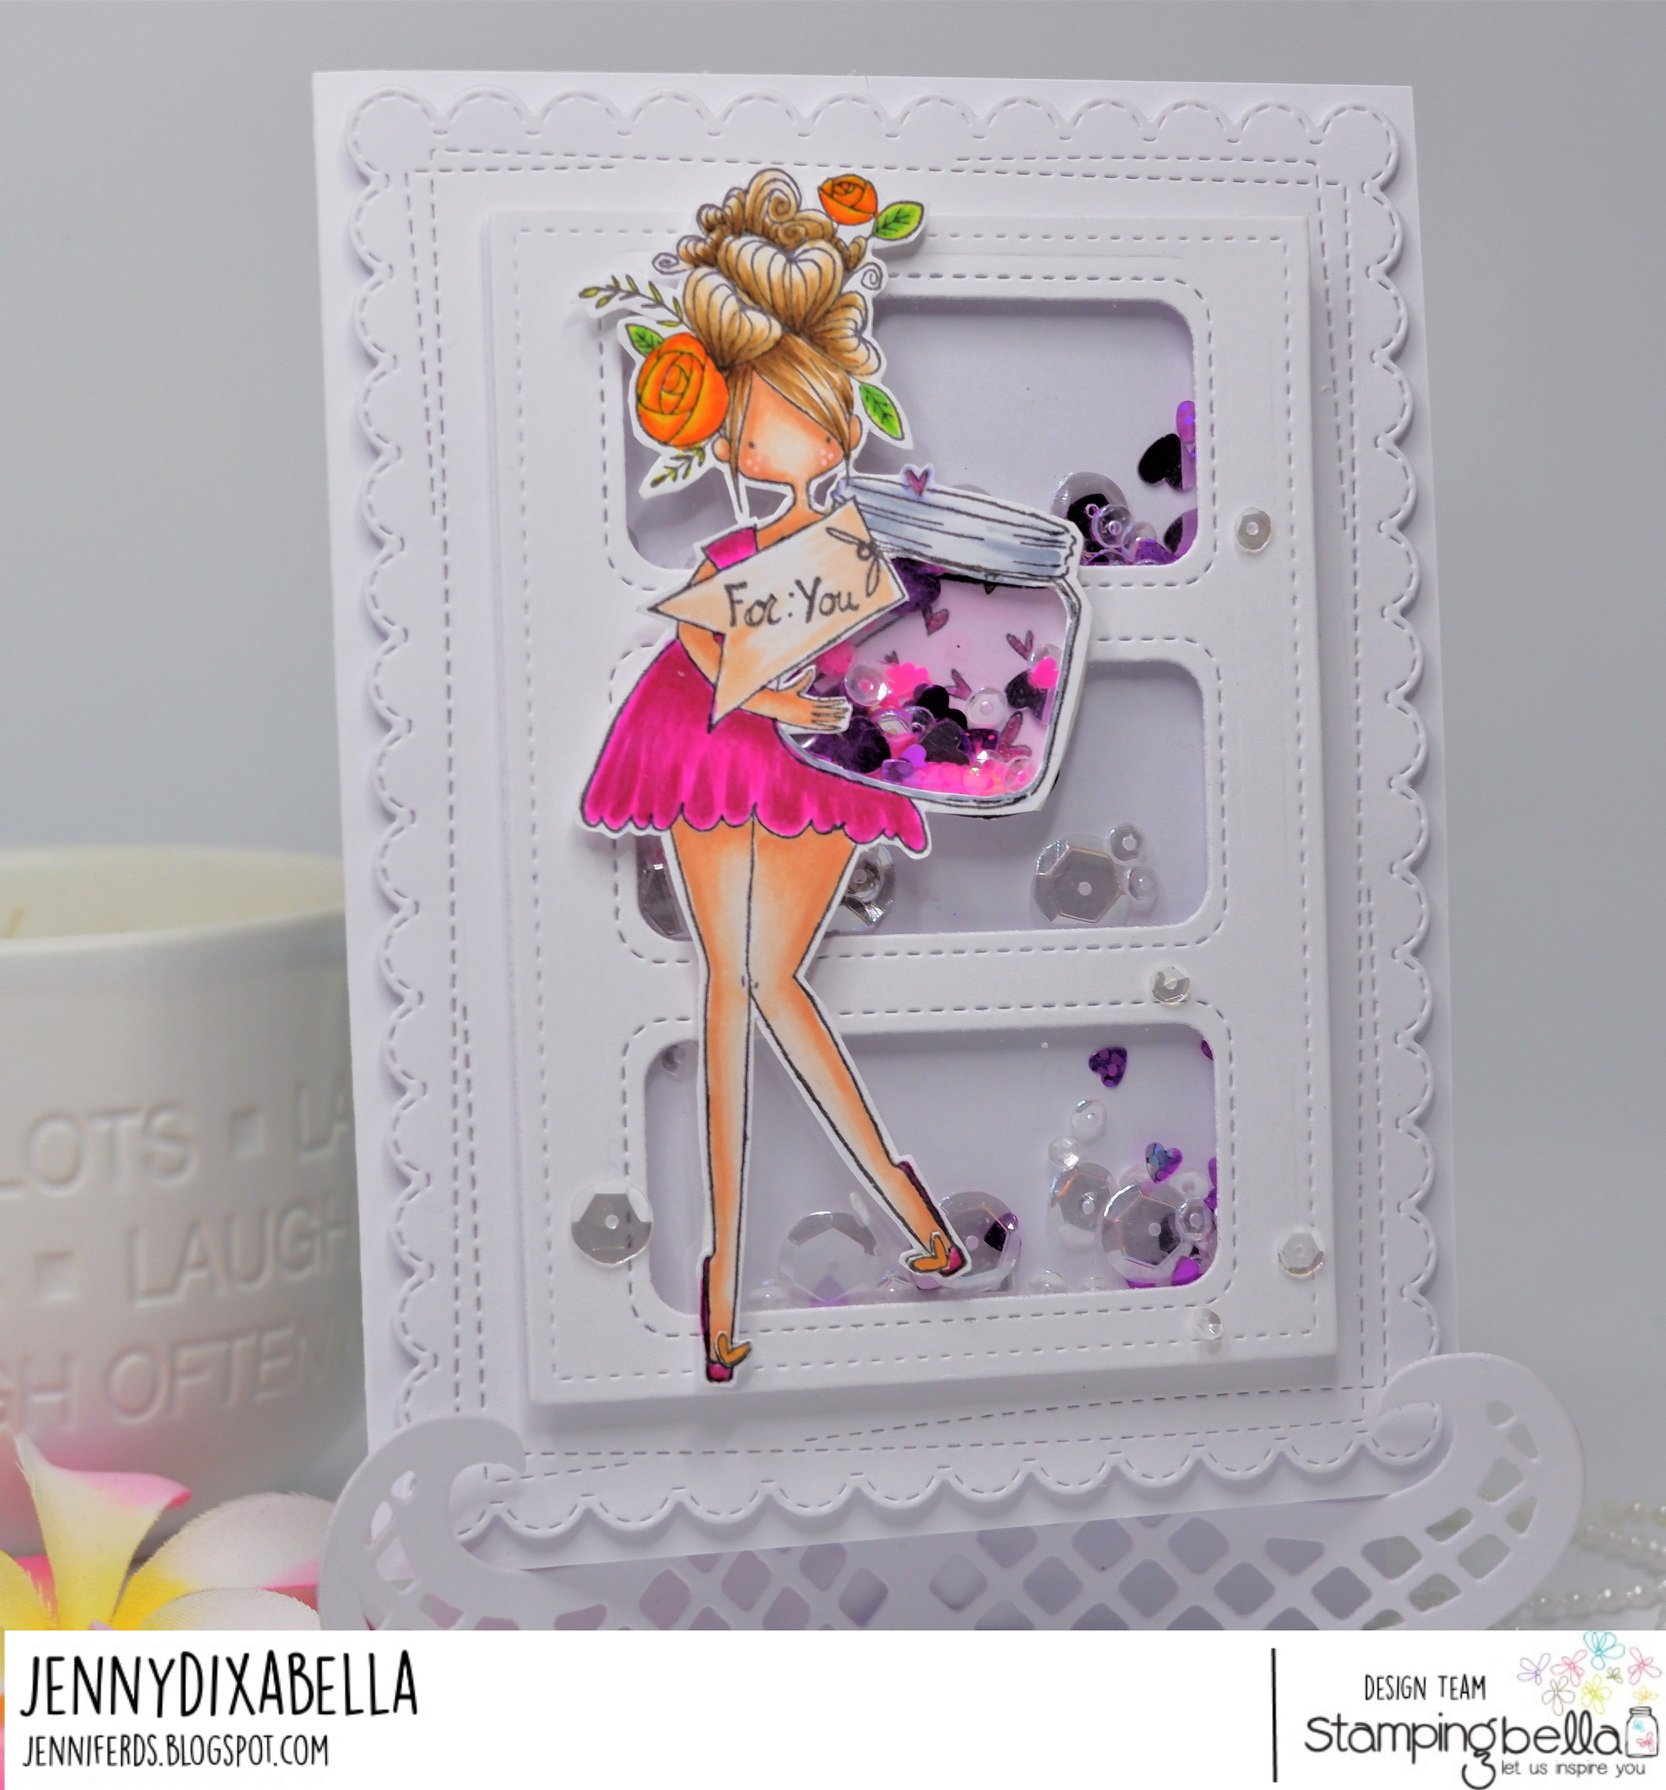 www.stampingbella.com: rubber stamp used :  CURVY GIRL WITH A JAR OF HEARTS.  CARD BY JENNY DIX